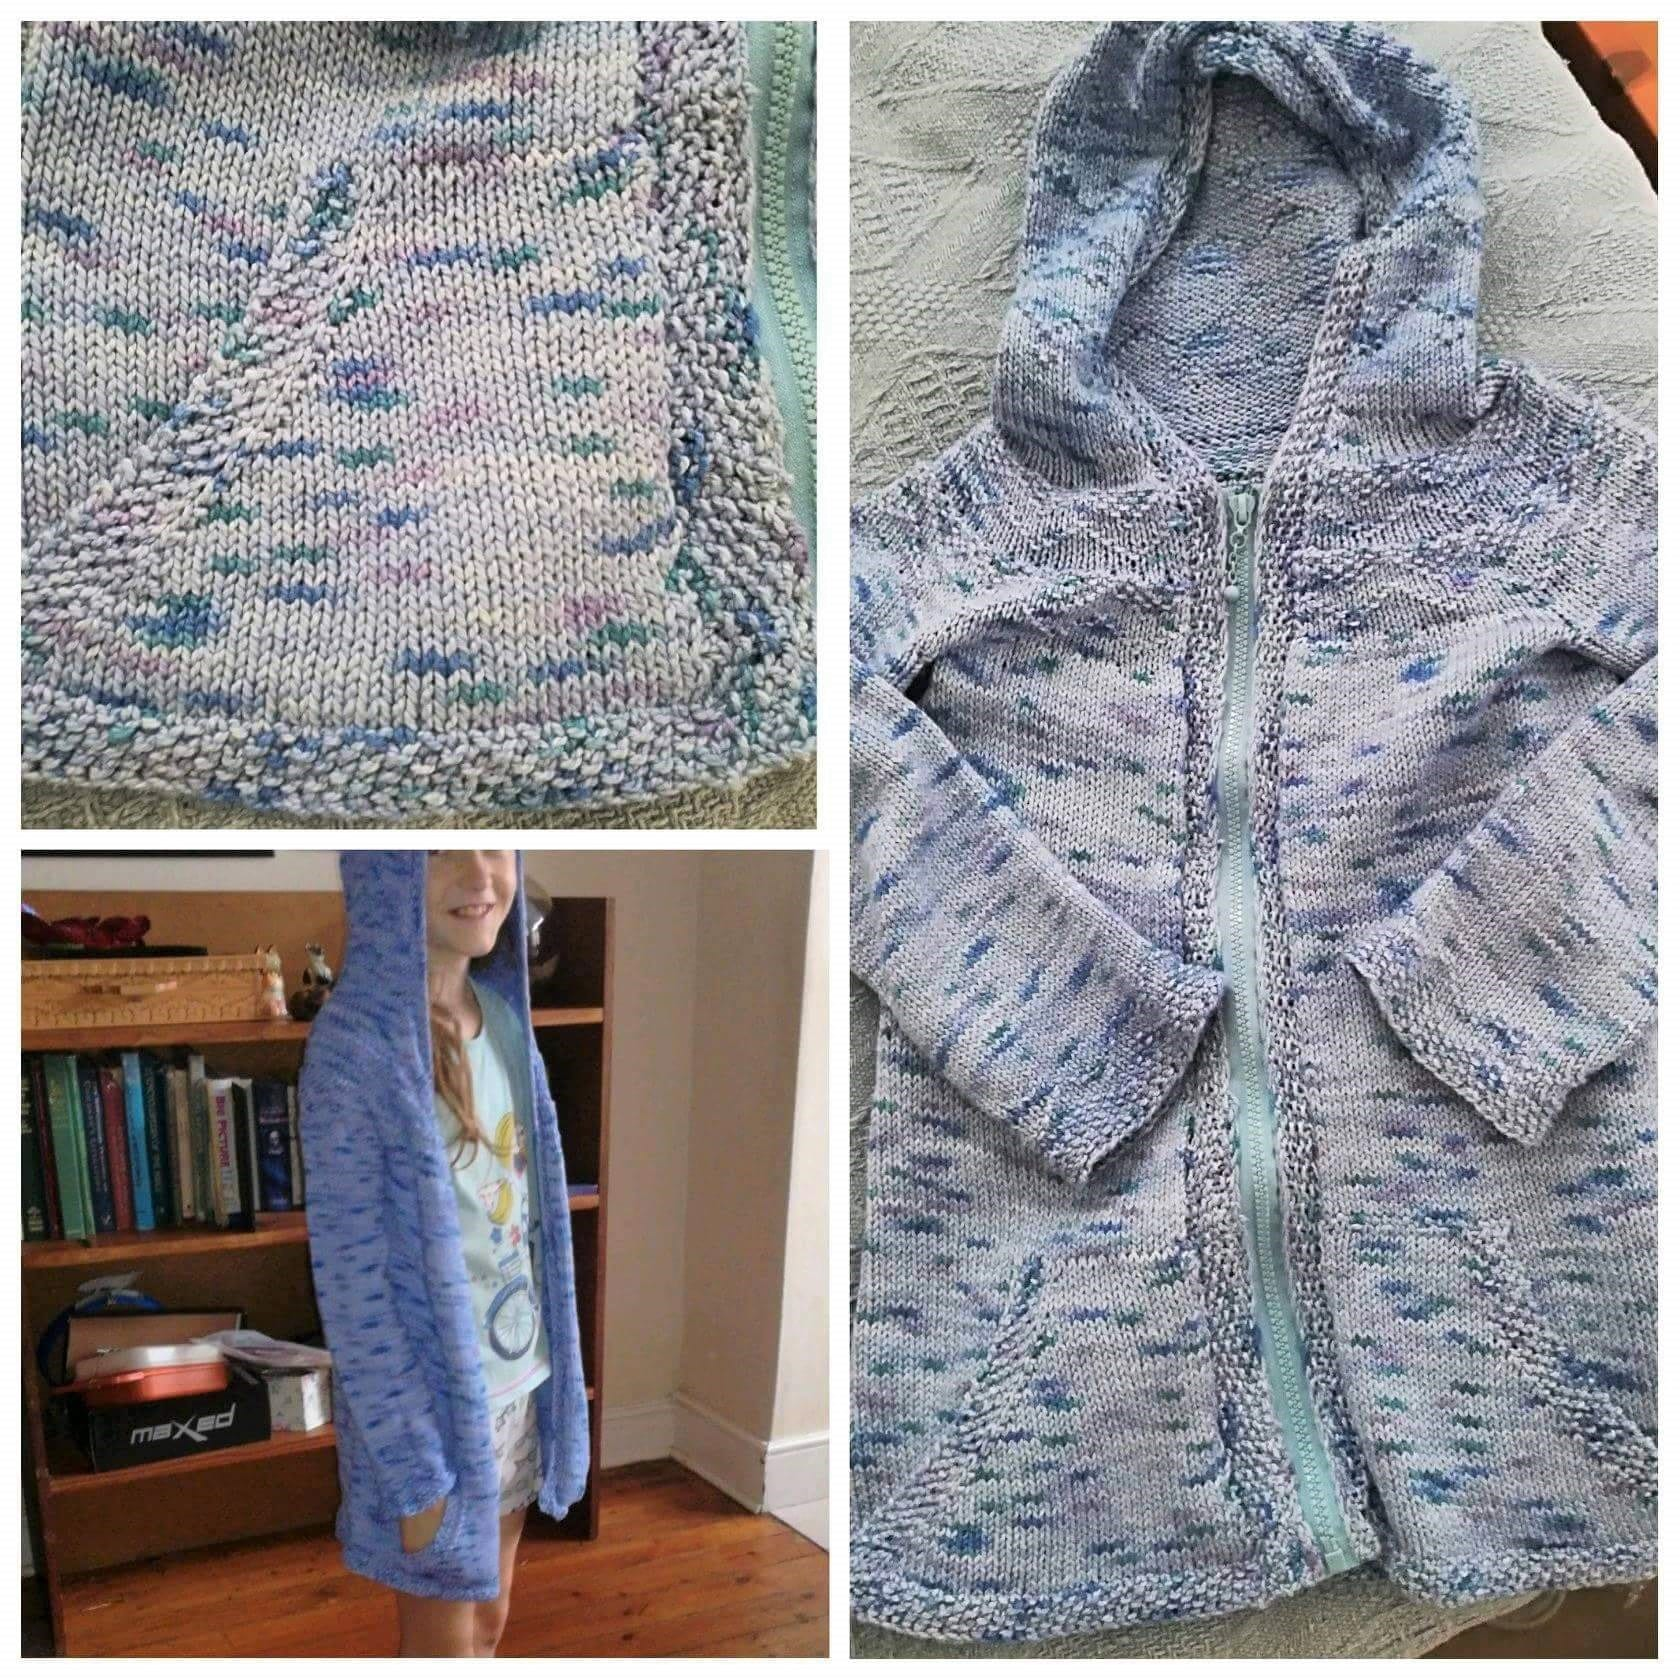 910f170b423c Judy used Eco-Cotton and knitted a  zipline  hoodie for her daughter. She  used Wisteria